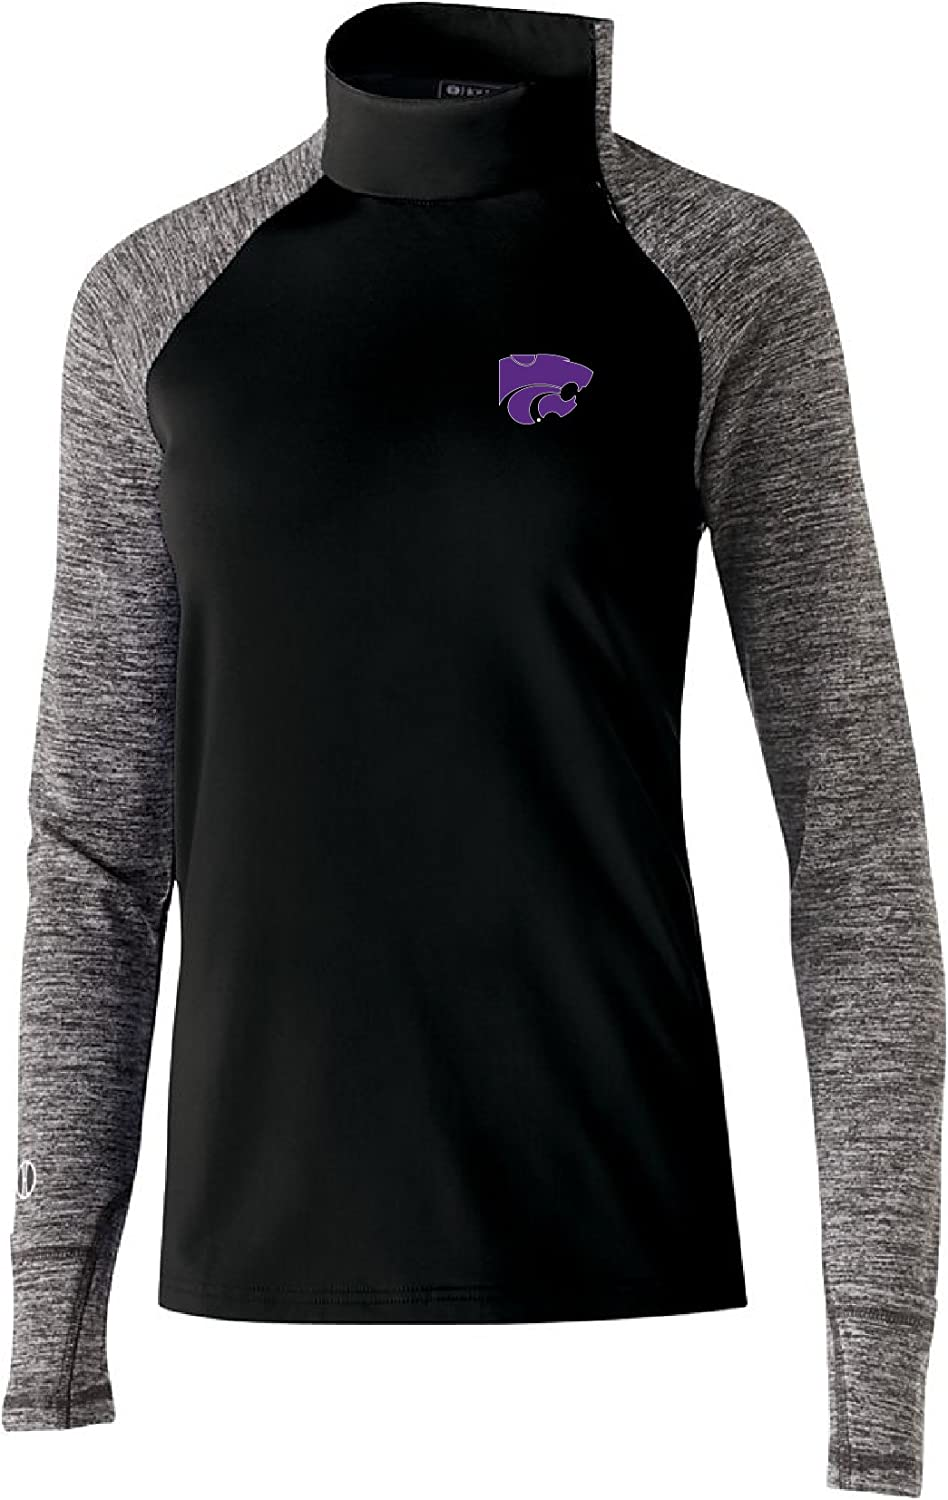 Ouray Sportswear NCAA womens Womens Affirm Pullover